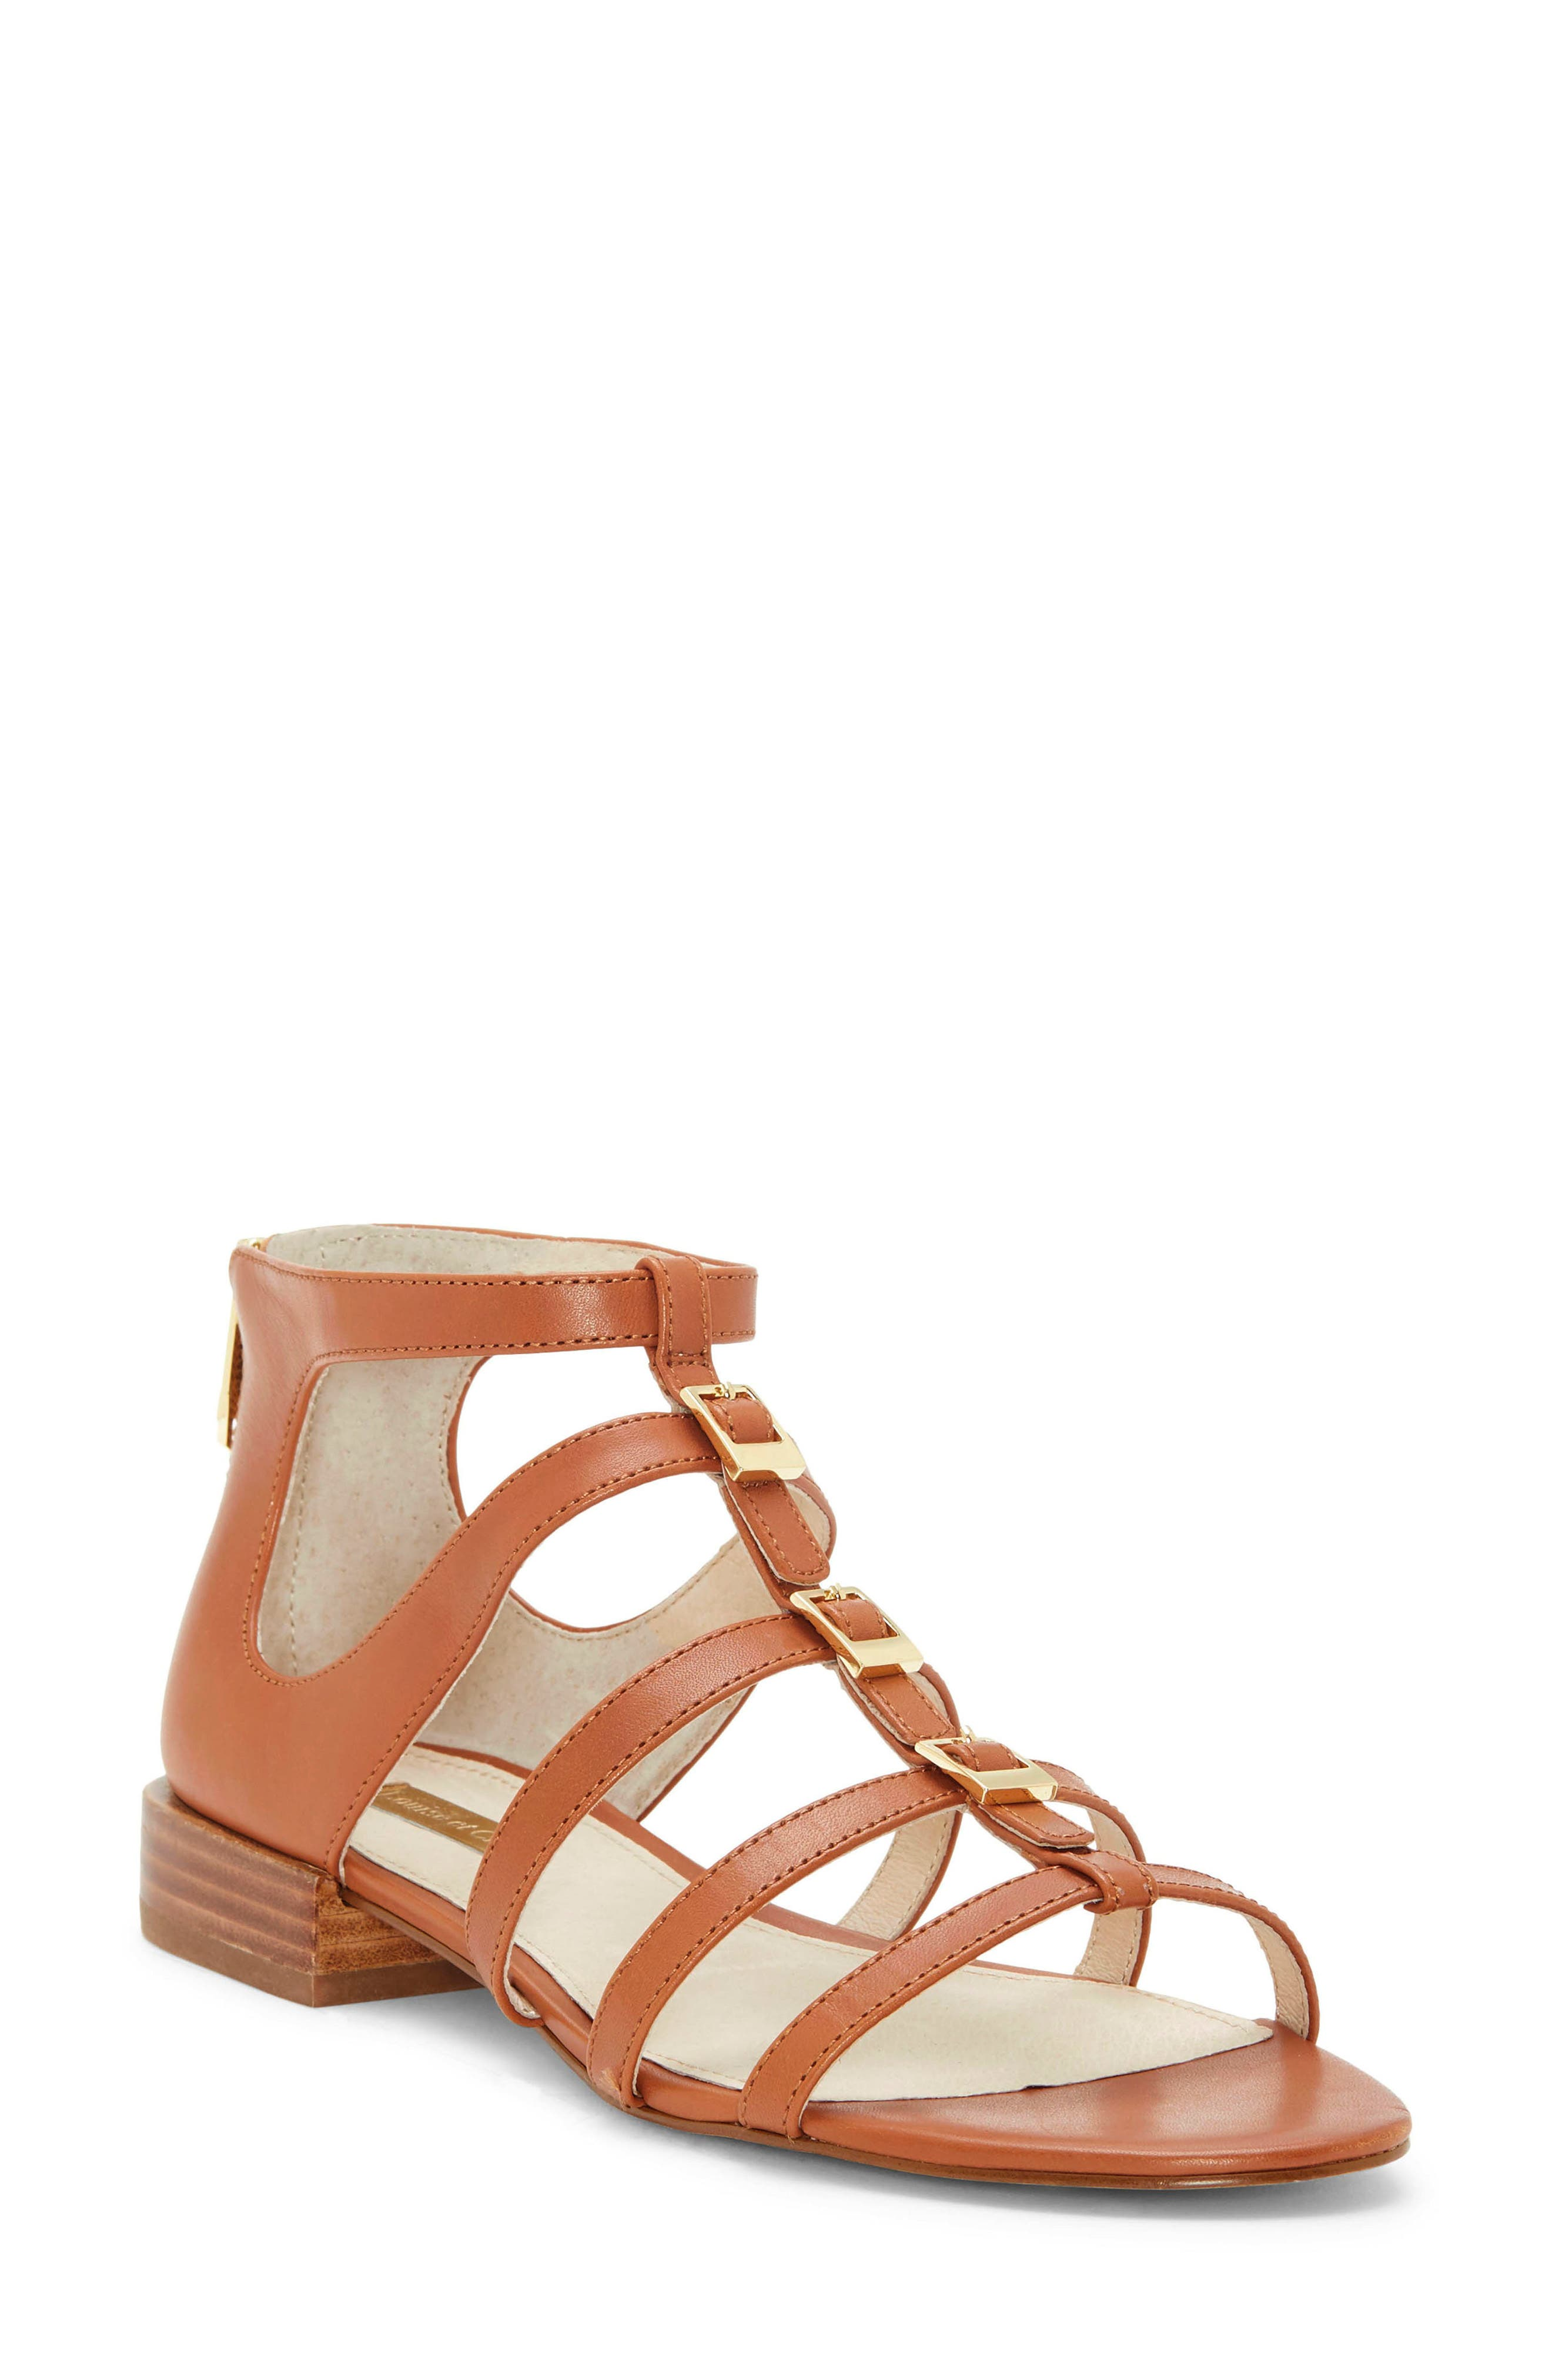 Louise Et Cie Arely Strappy Sandal, Brown